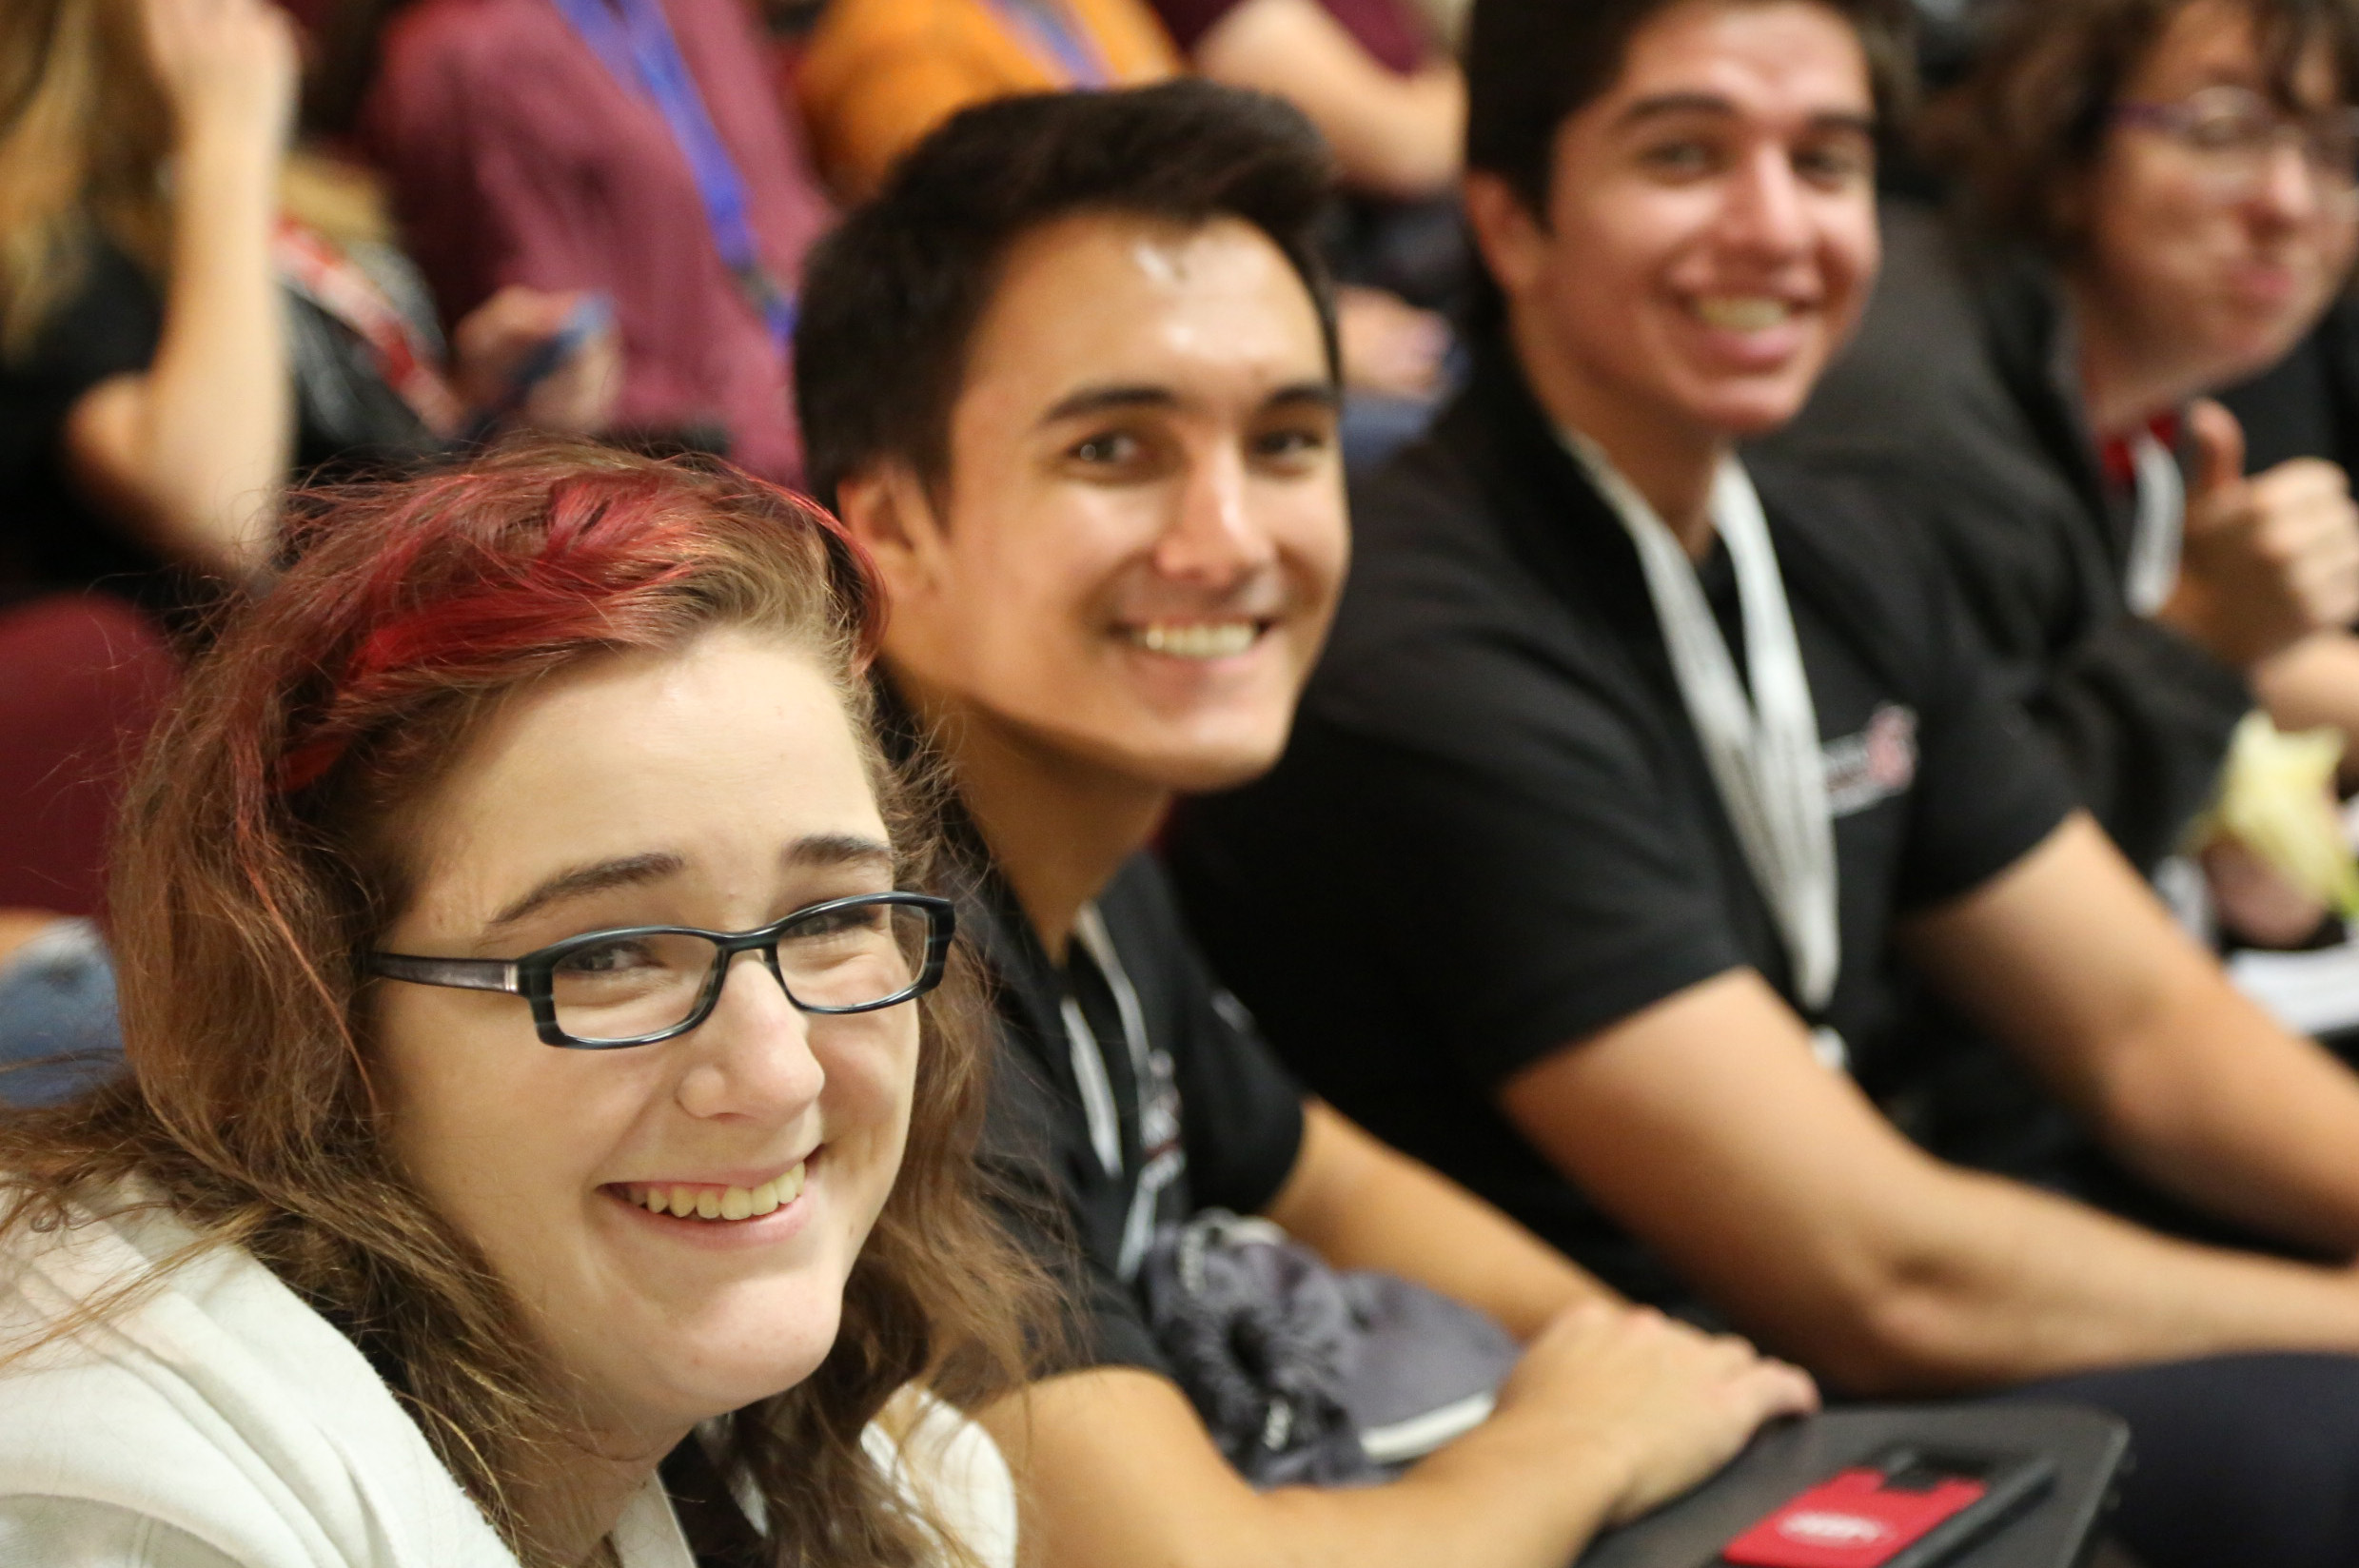 Students smiling at a conference.